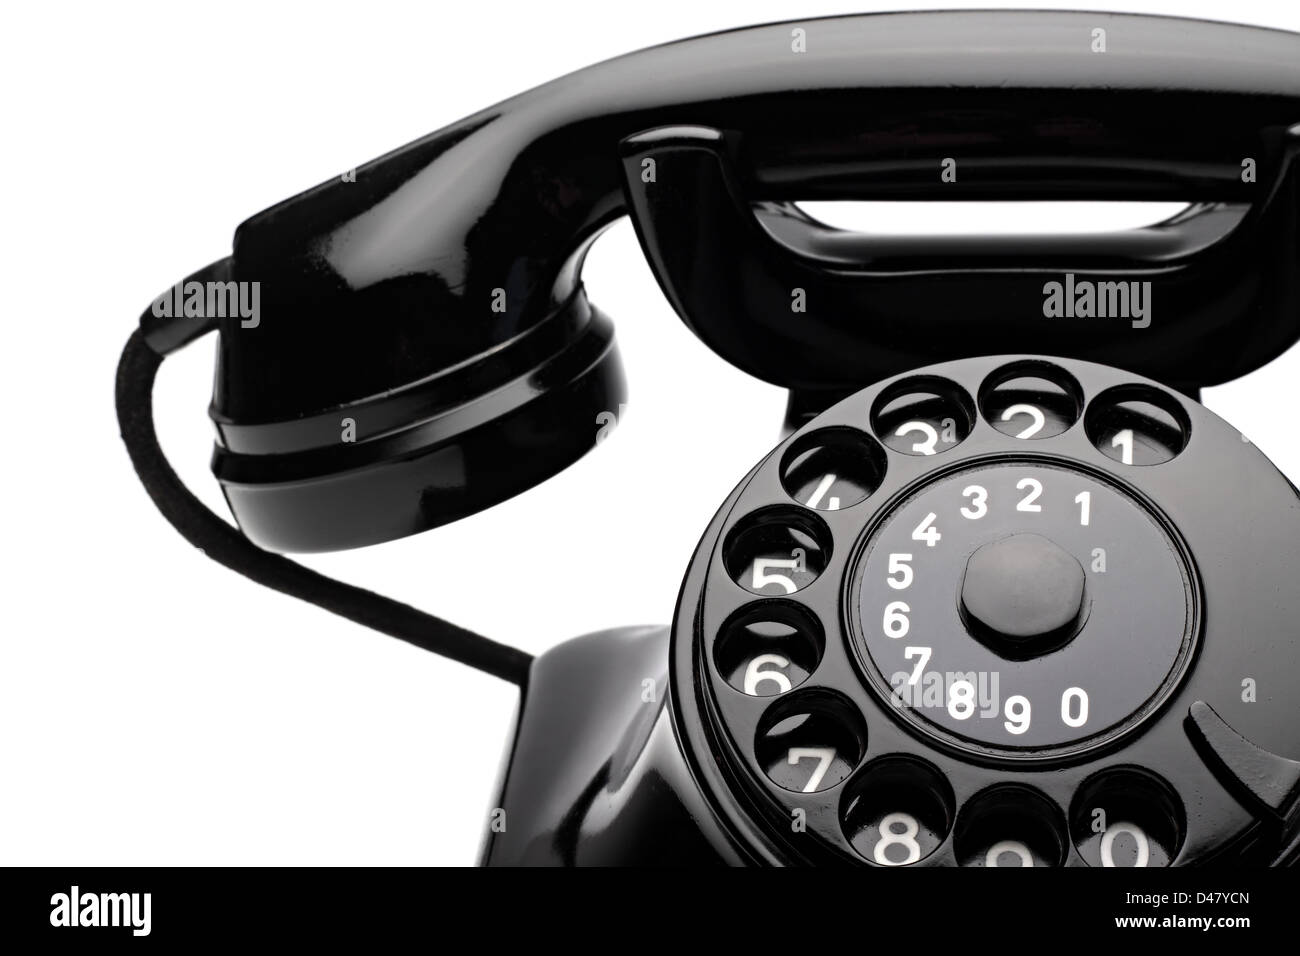 an old telephon with rotary dial - Stock Image